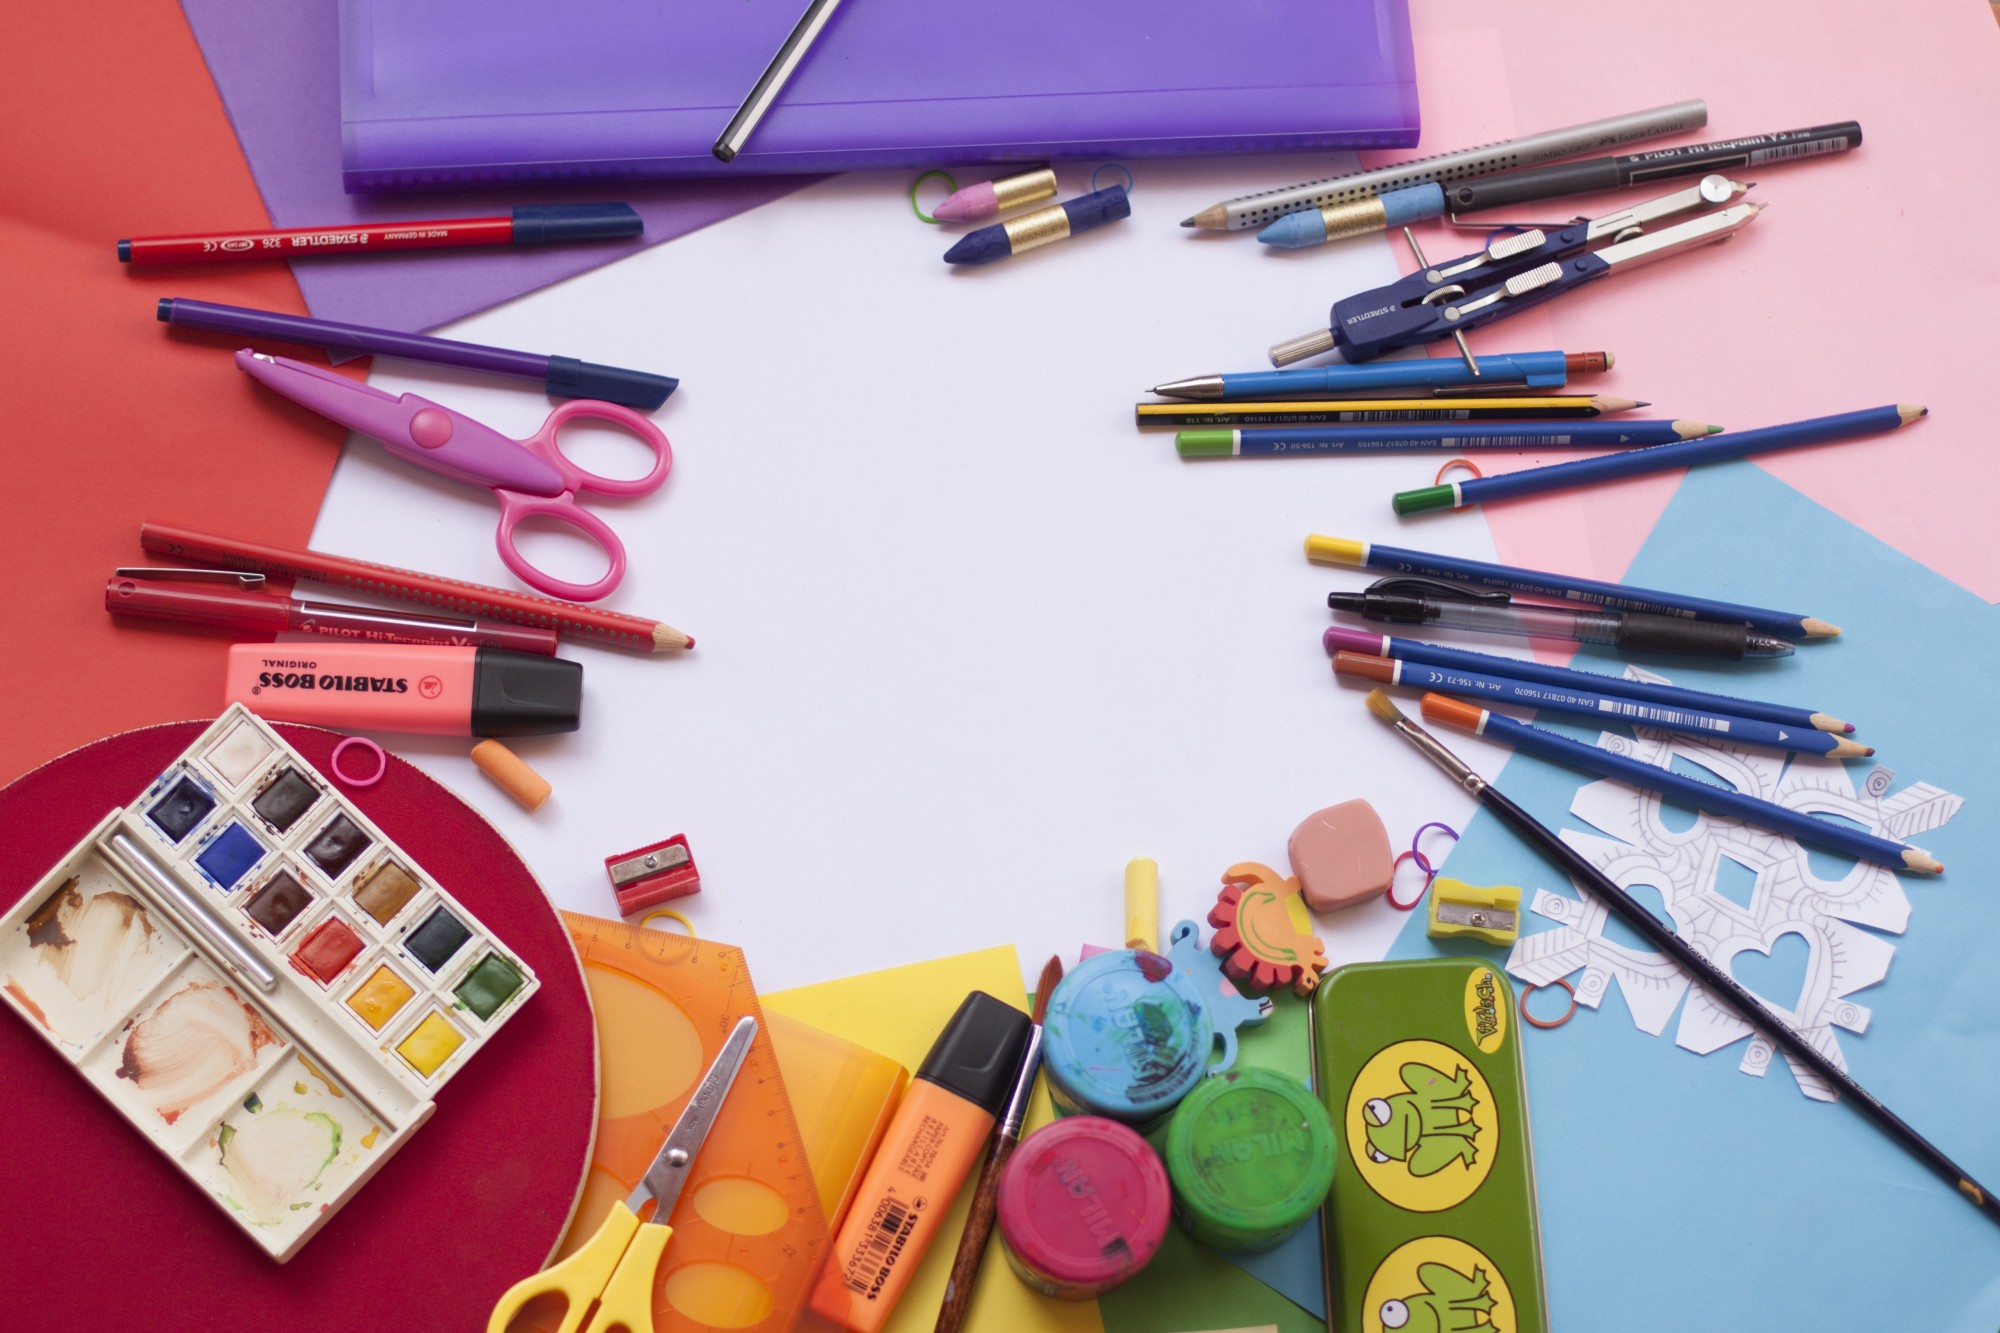 Image of art and craft supplies